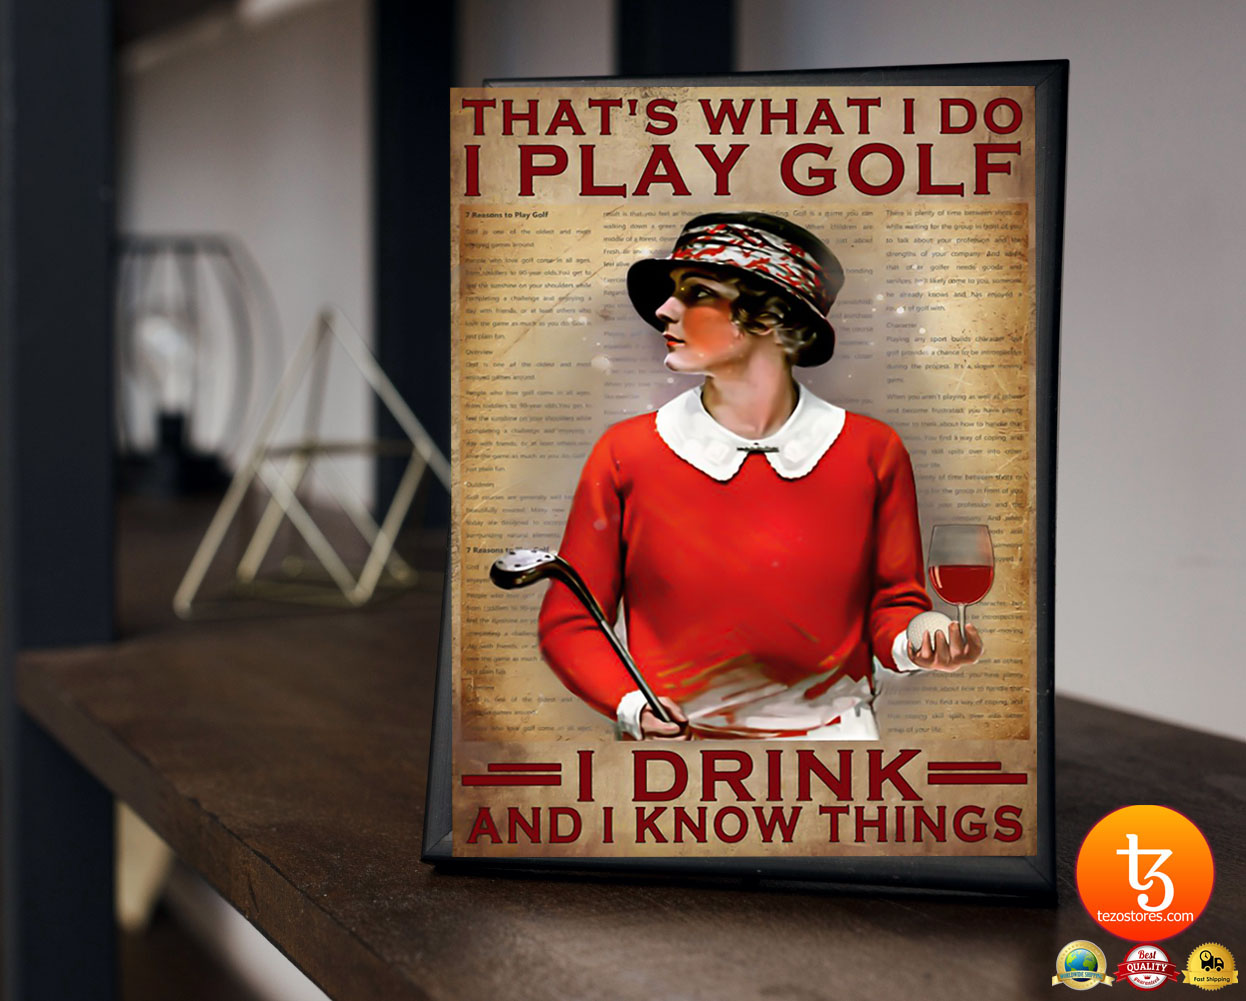 That's what I do I play golf I drink and I know things poster